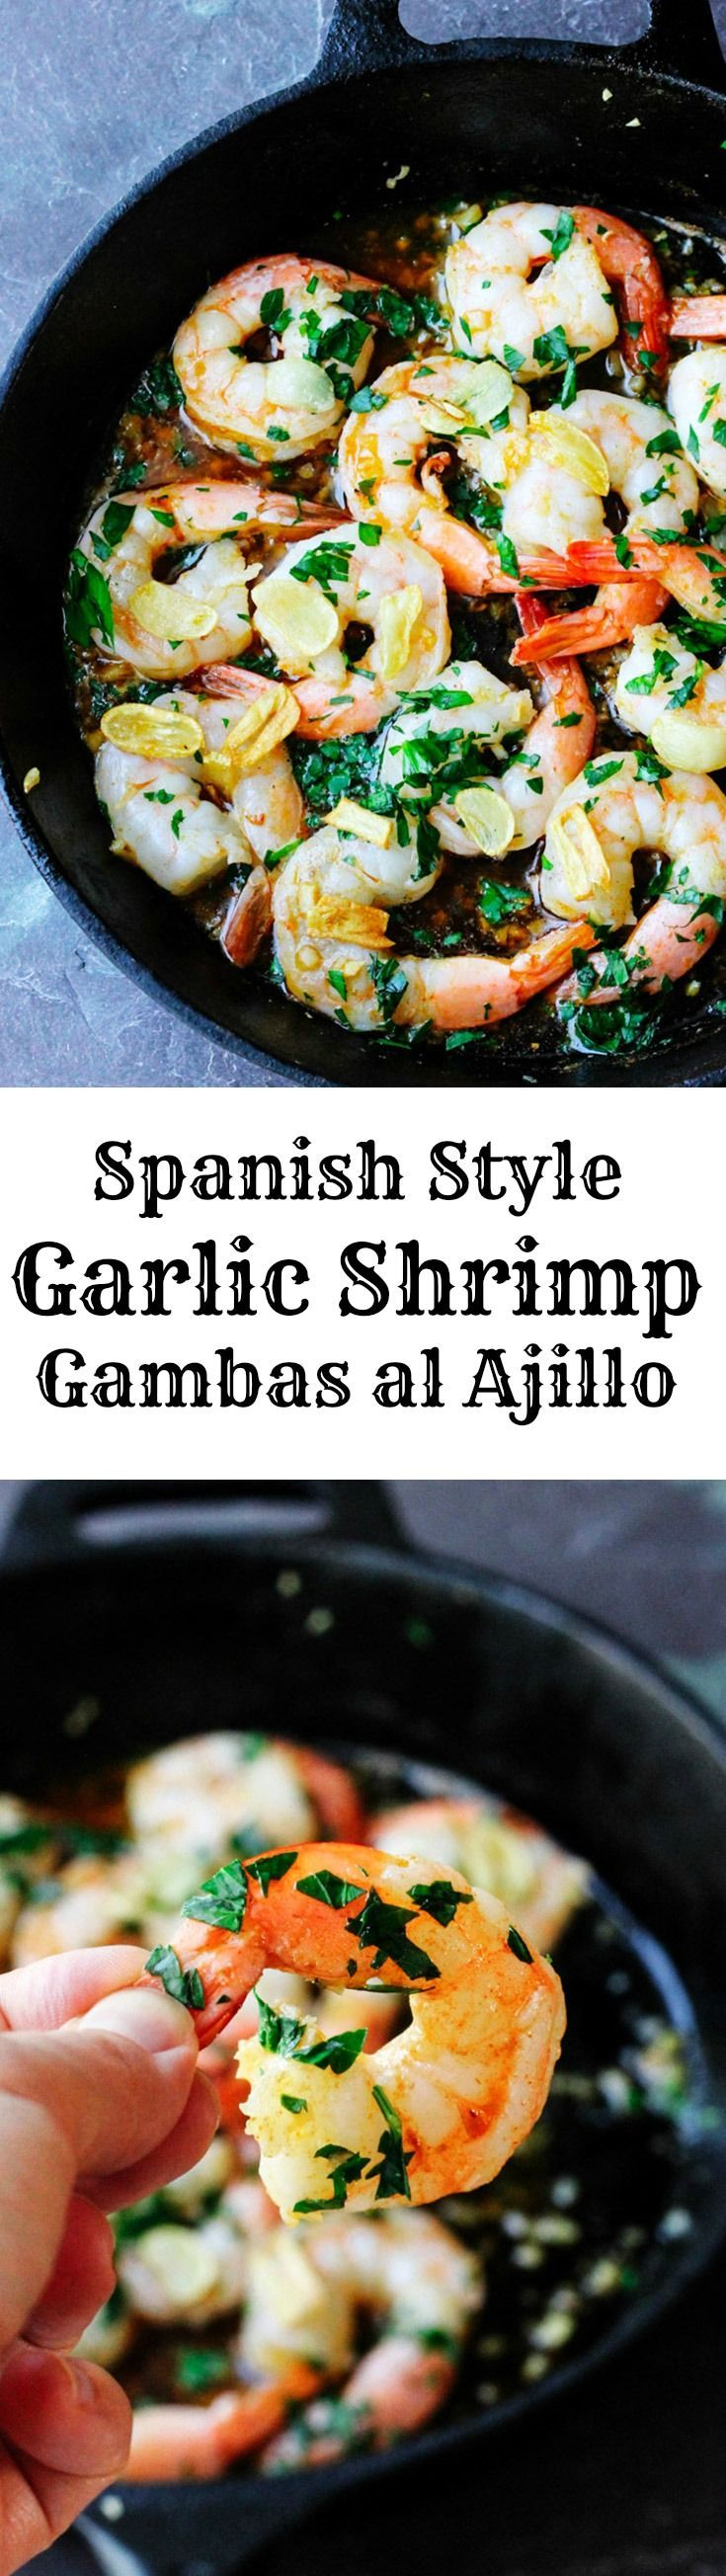 Spanish Style Garlic Shrimp is cooked in olive oil with tons of garlic, dried chilies or Spanish smoked paprika, and brandy or sherry wine. It's absolutely outstanding!